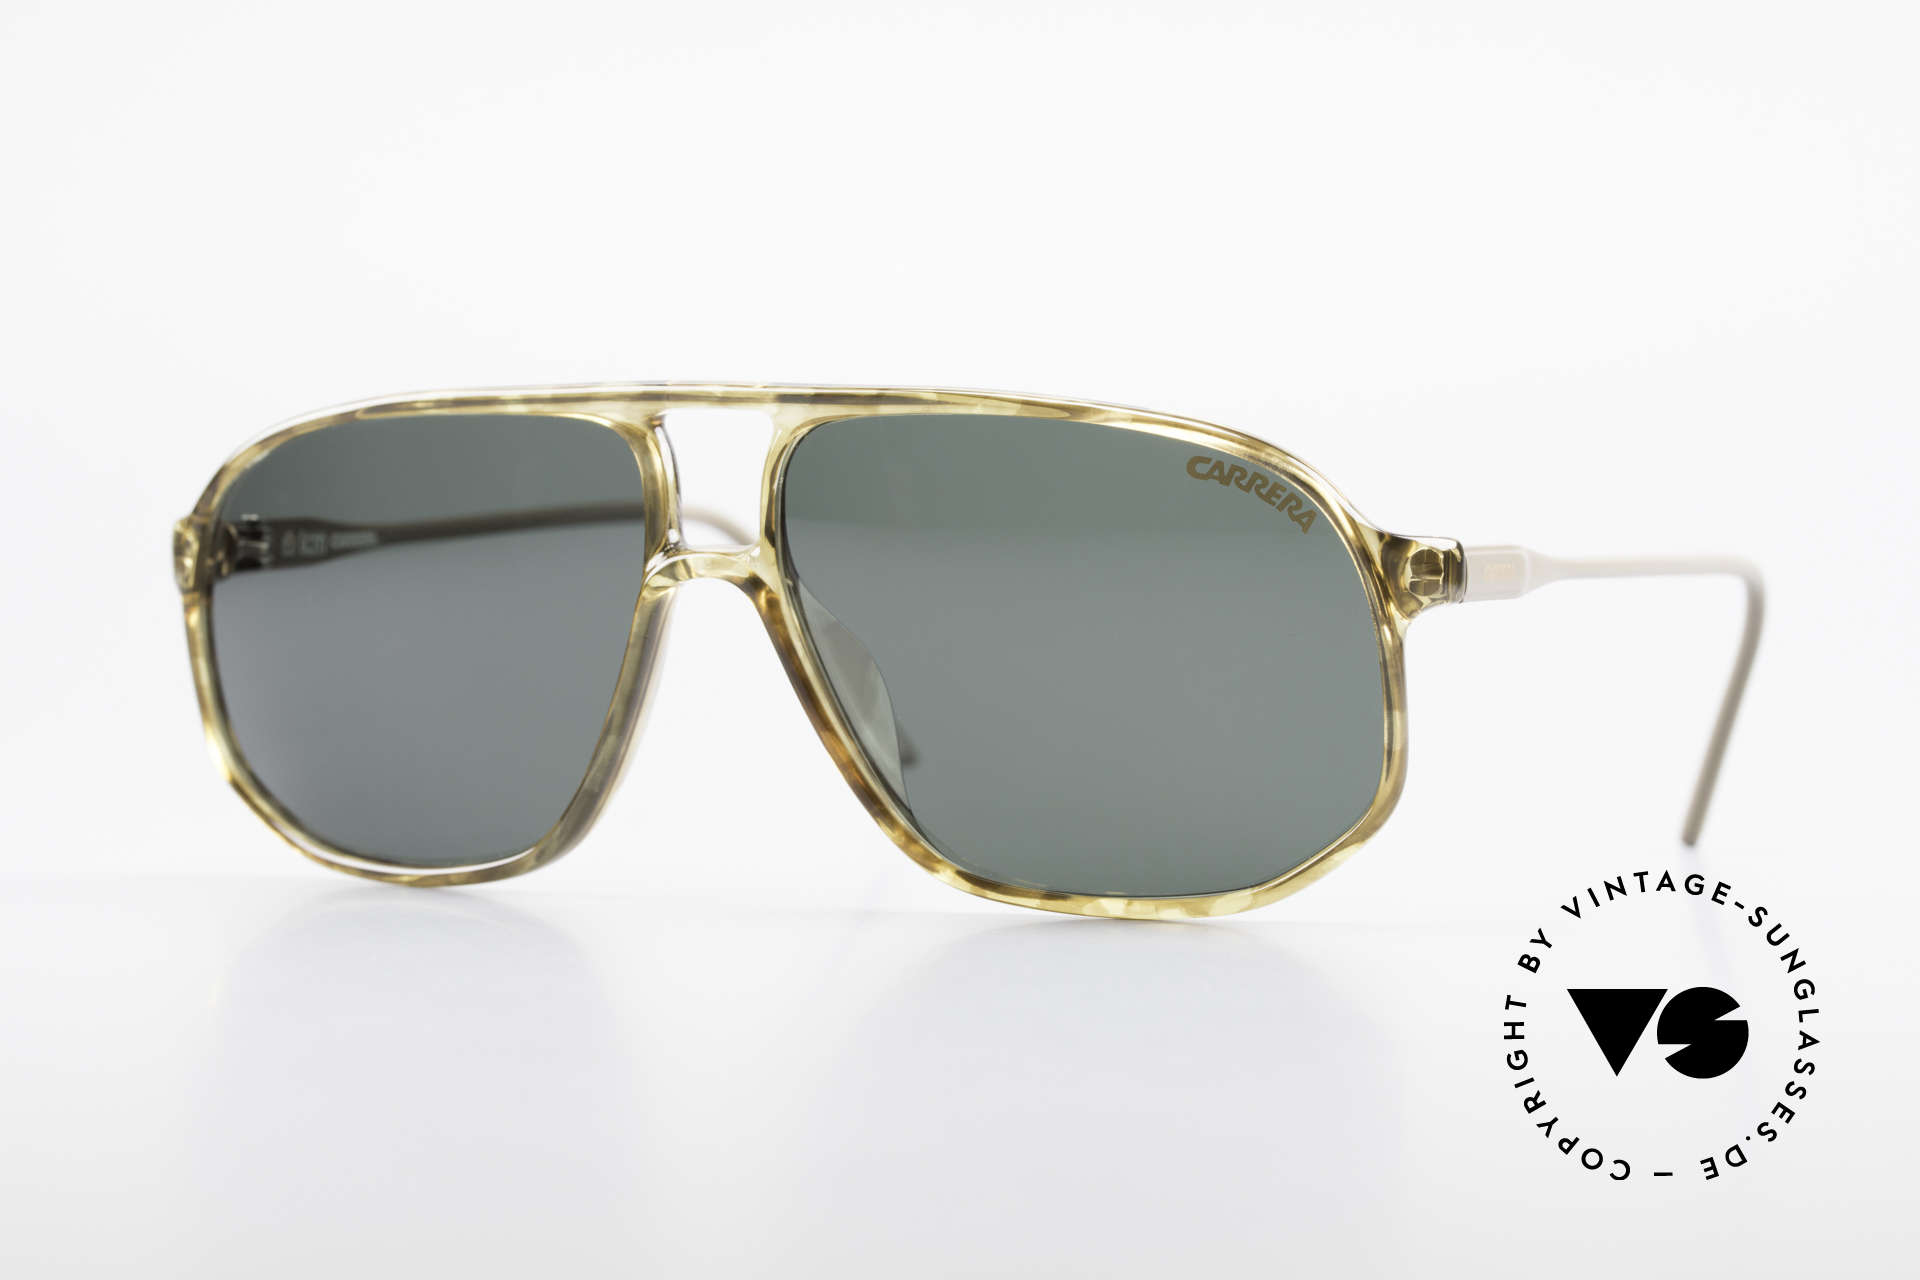 Carrera 5325 80's Carrera Sunglasses Optyl, rare vintage sunglasses by Carrera from the late 80's, Made for Men